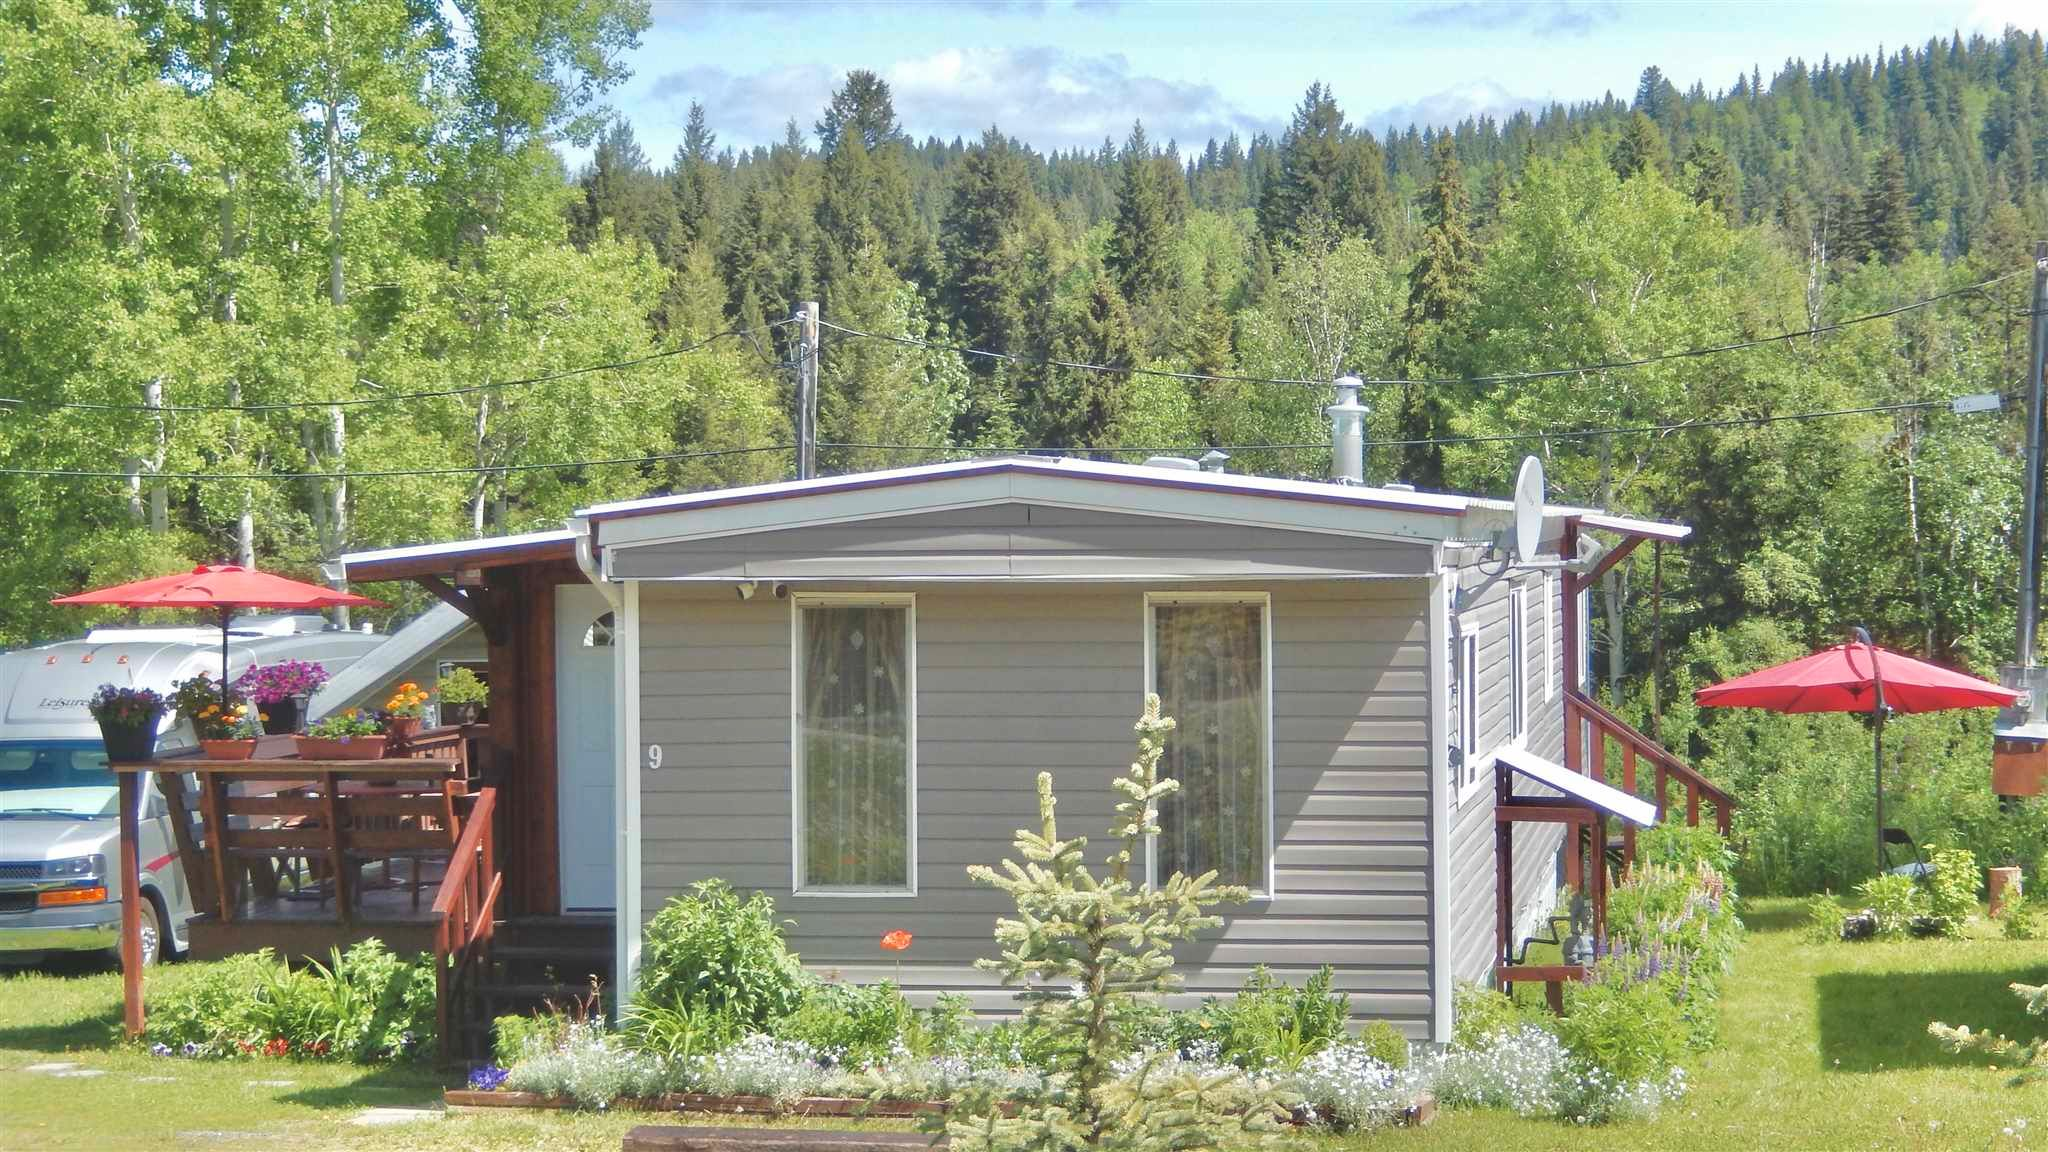 """Main Photo: 9 7128 OTWAY Road in Prince George: Cranbrook Hill Manufactured Home for sale in """"SOUTH SHORE TRAILER PARK"""" (PG City West (Zone 71))  : MLS®# R2598224"""